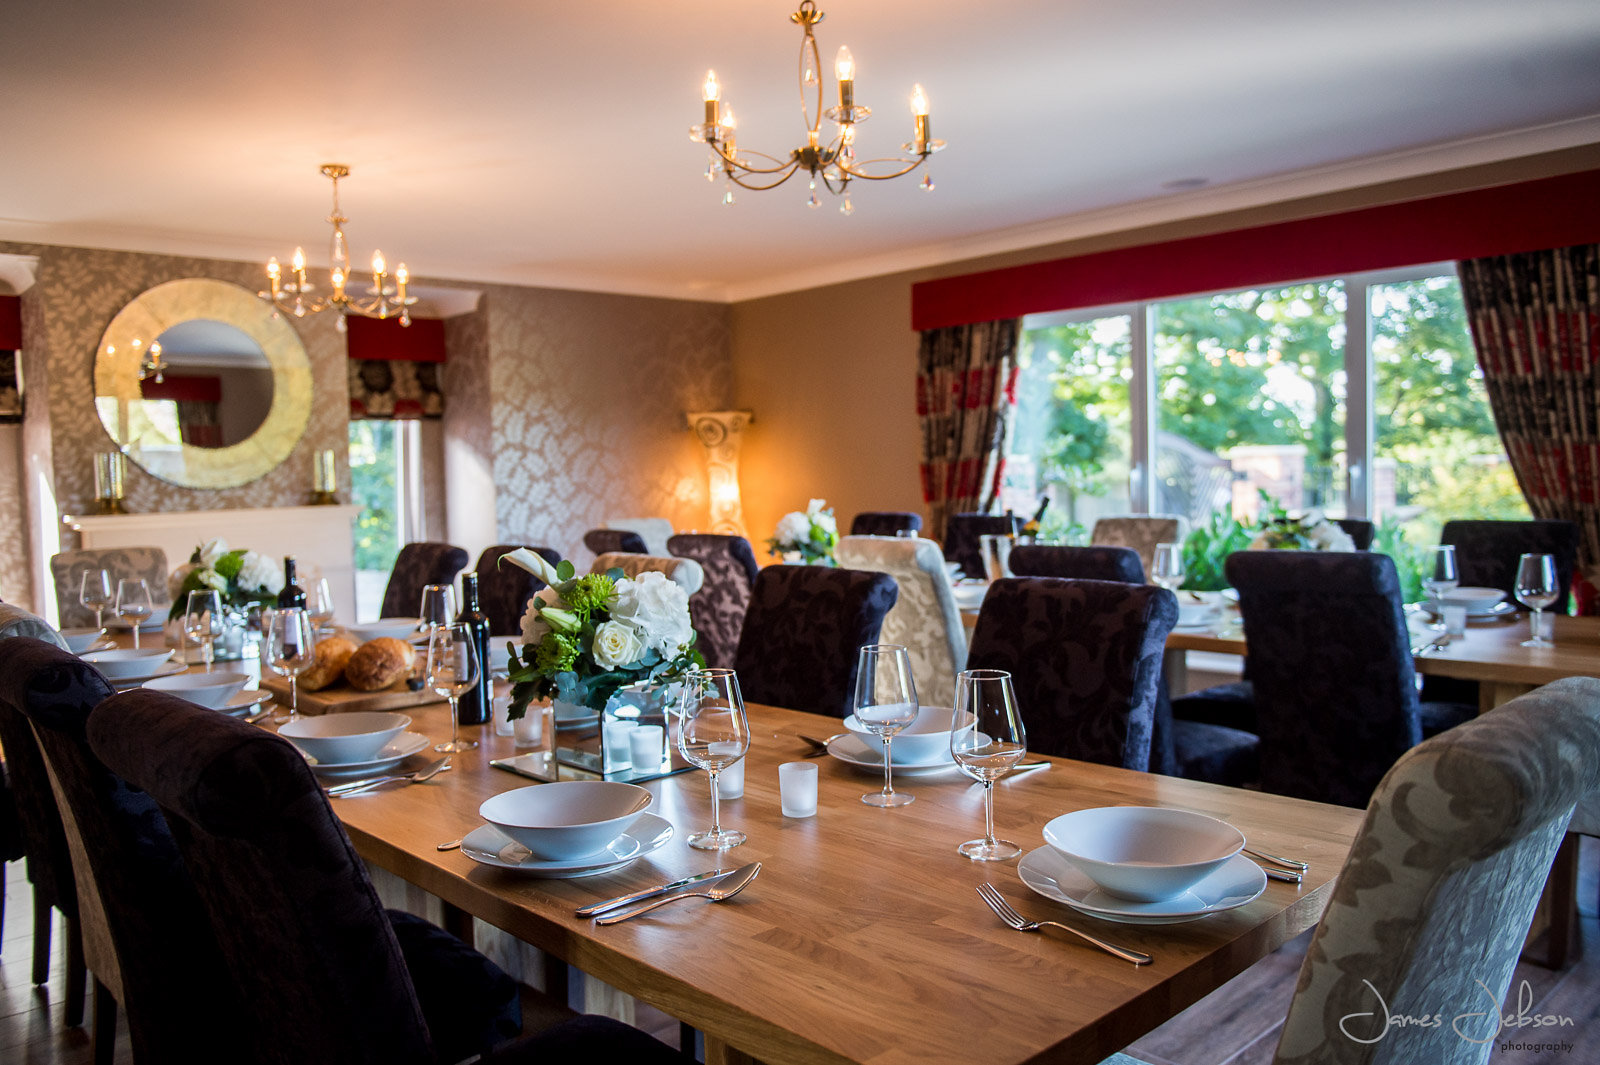 Family dinner at the new Langton's Venue